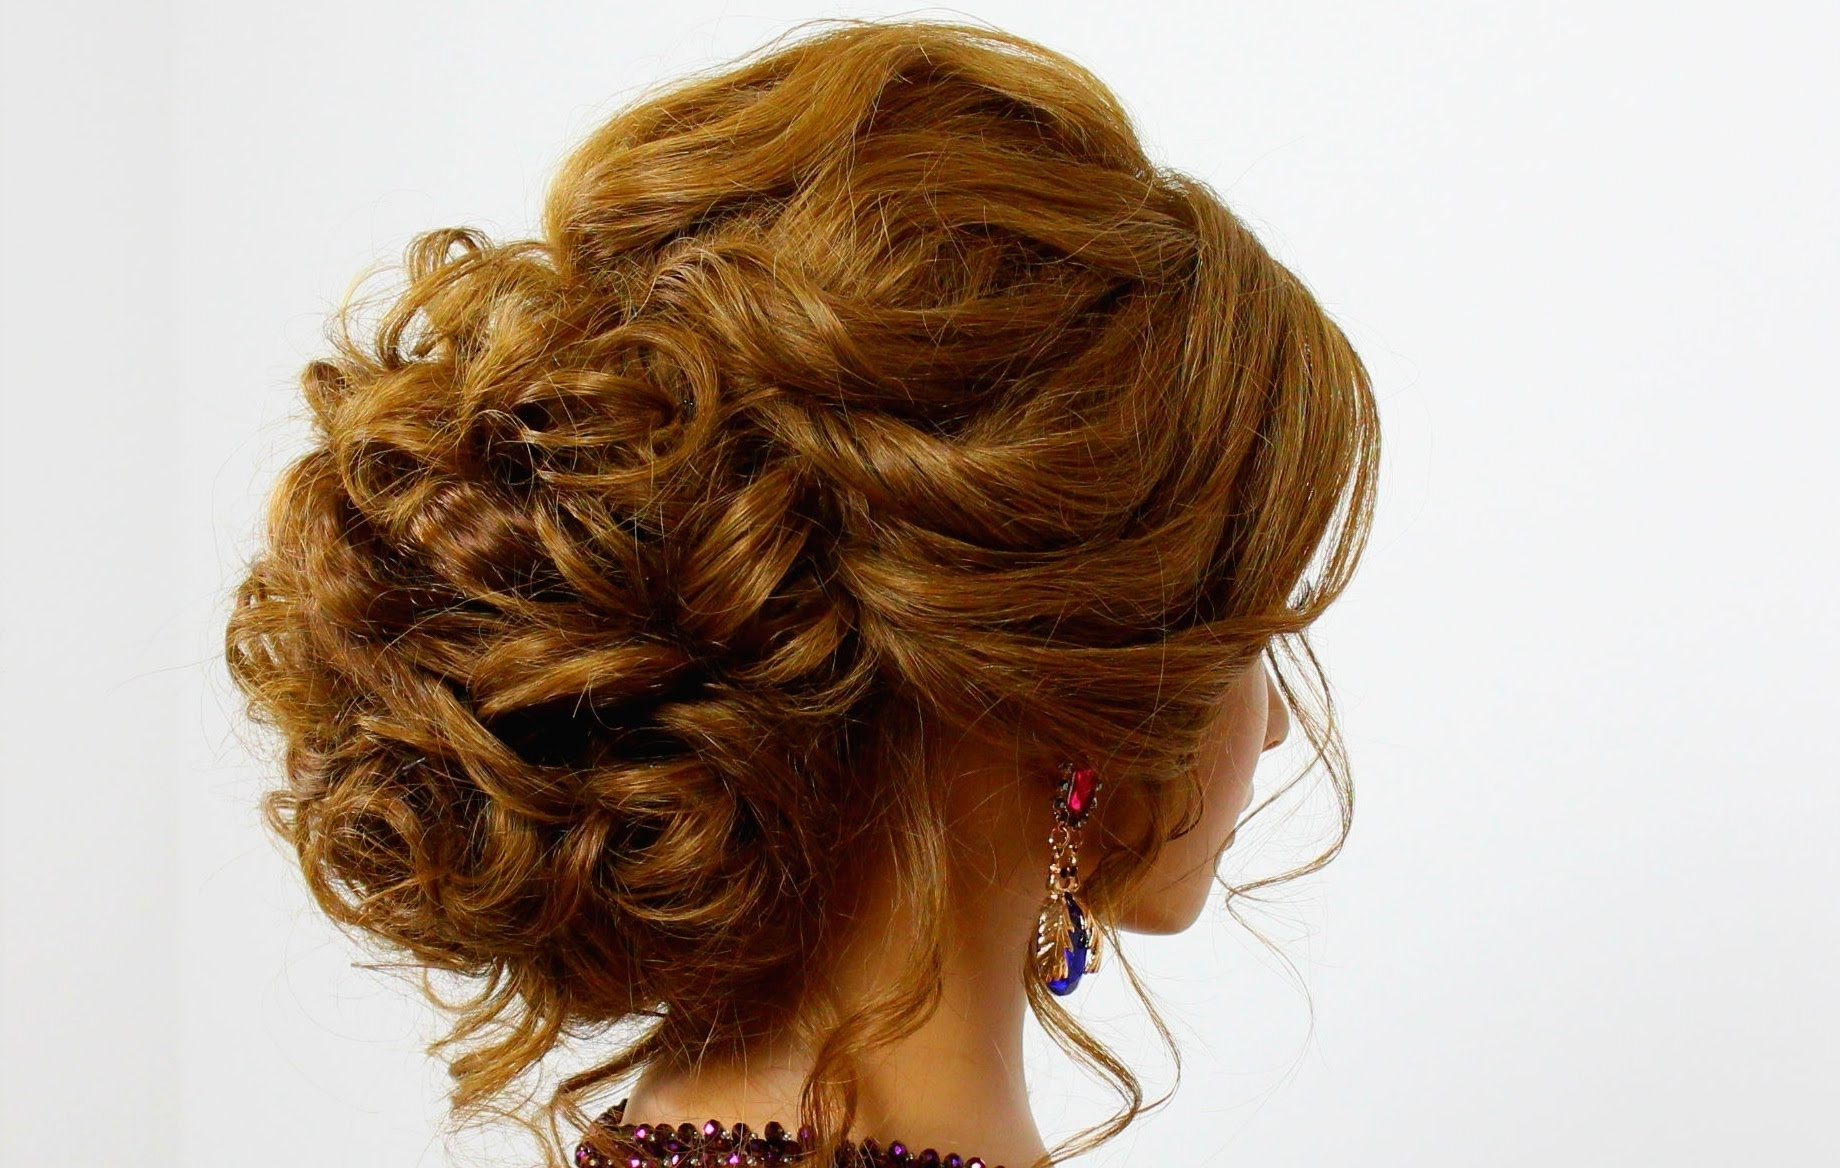 Hairstyle For Long Hair (View 11 of 15)